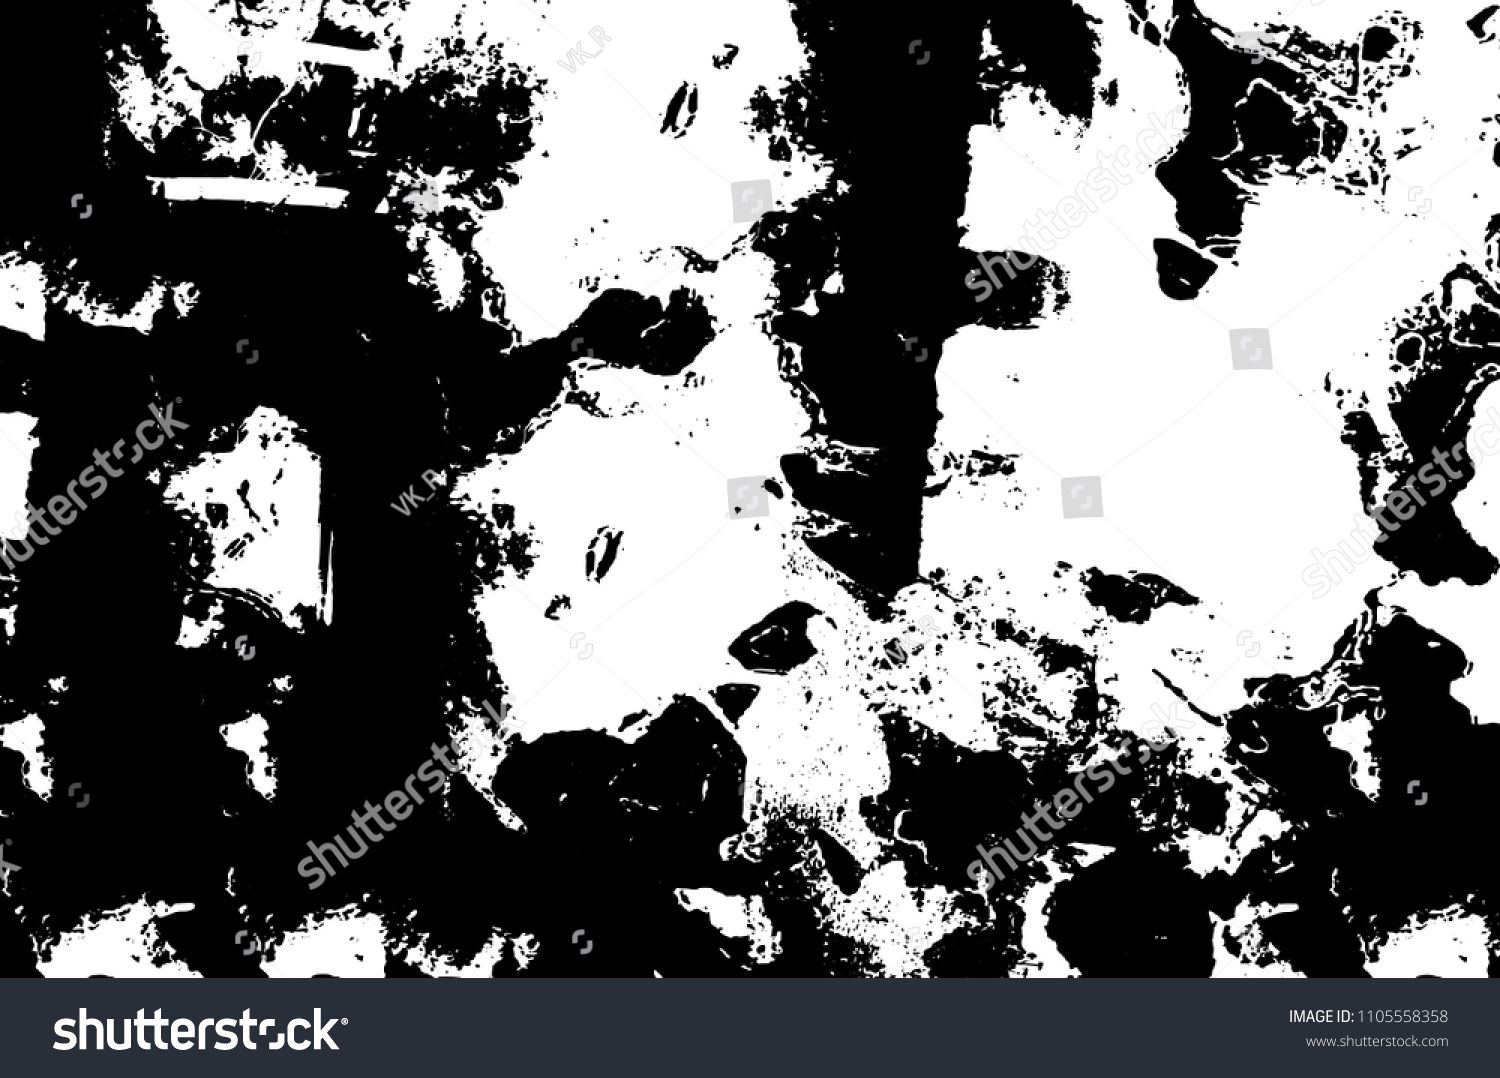 Abstract Monochrome Grunge Background Black And White Vintage